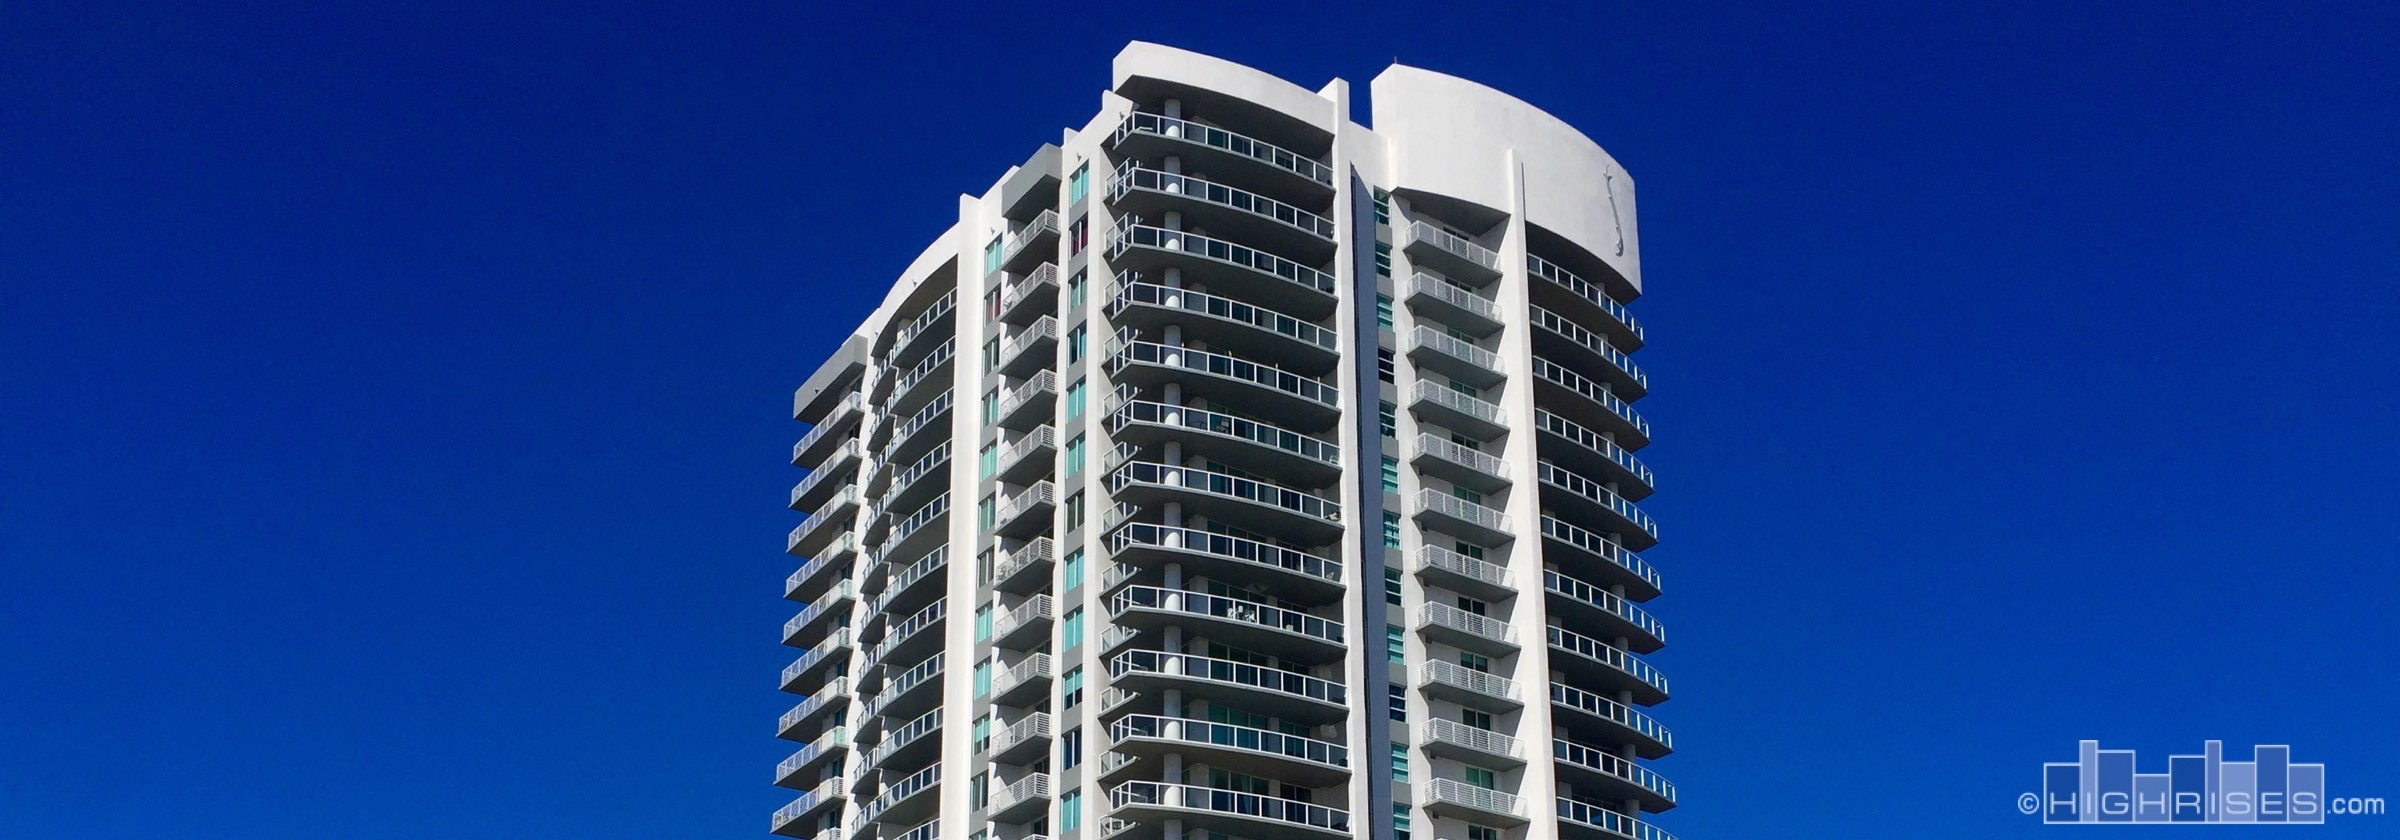 Strada 315 Condos of Fort Laderdale, FL | 315 NE 3rd Ave